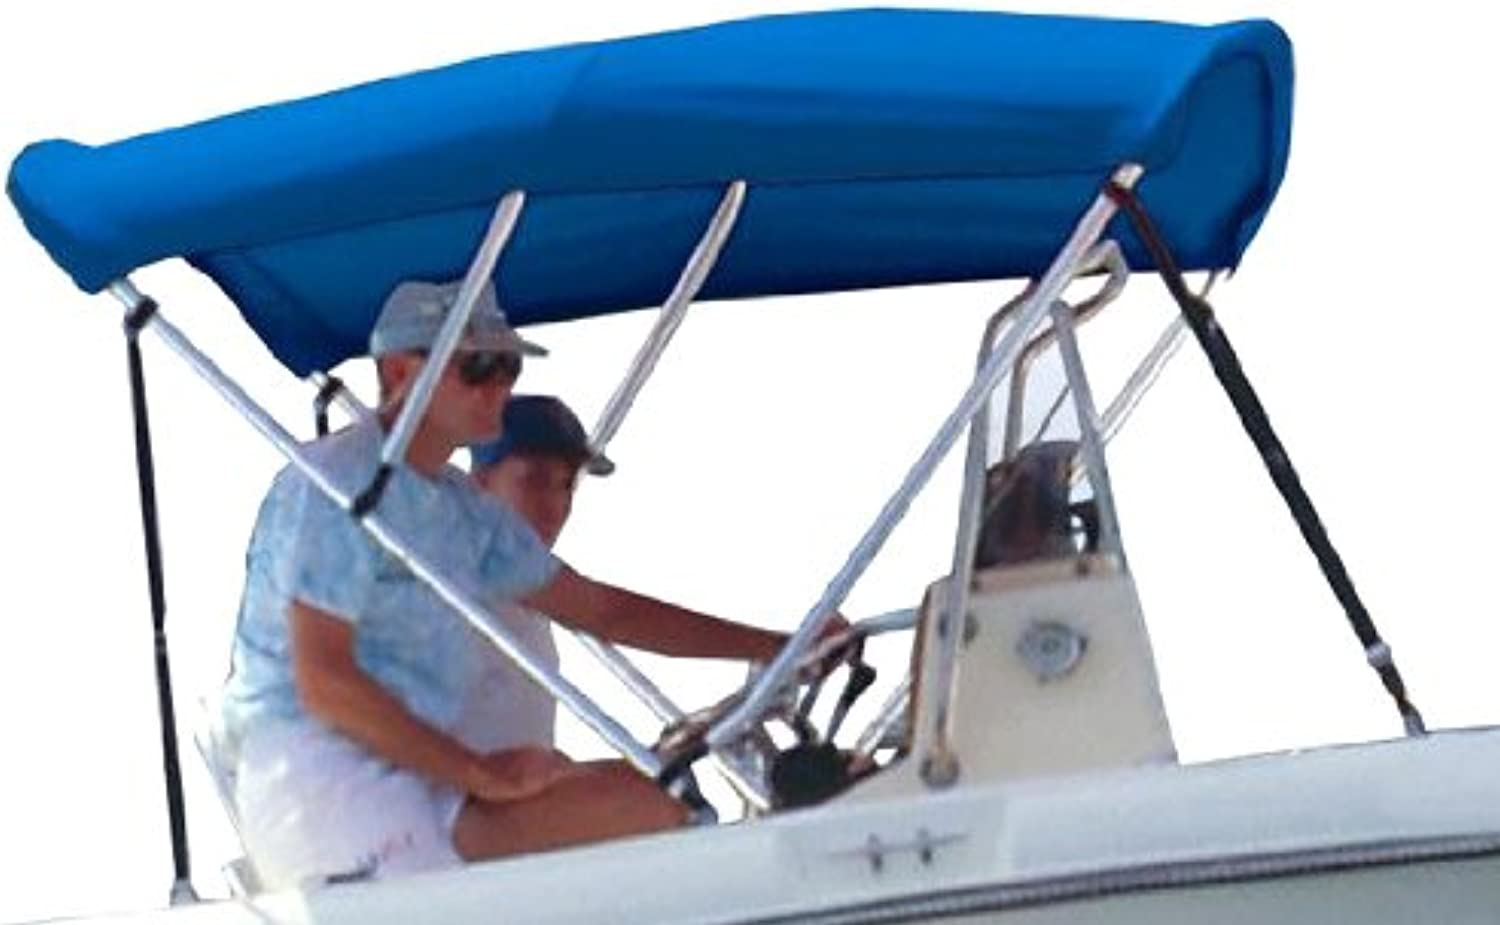 Survivor Marine Products Bimini Top (Fabric Only), bluee, 6Feet Length x 54Inch Height x 6066Inch Width